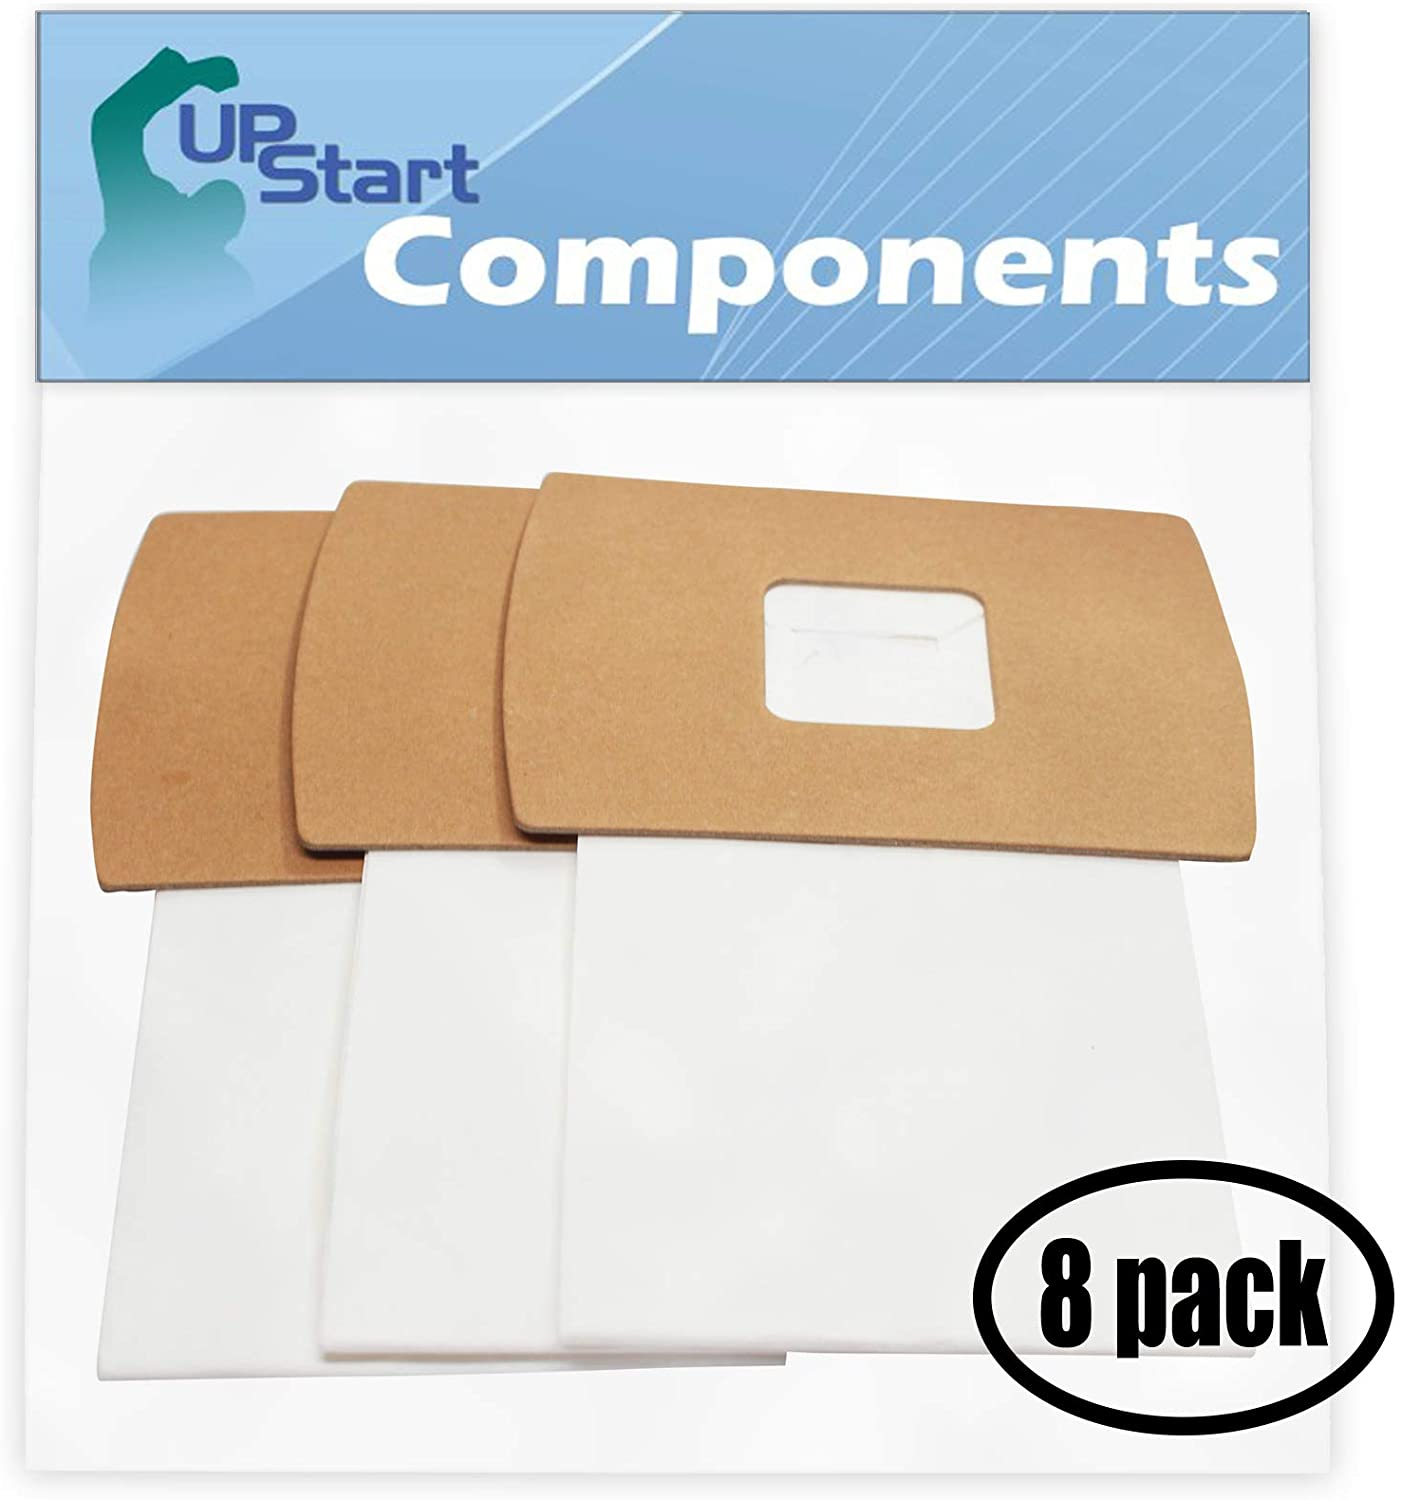 24 Replacement Type BB Buster B Vacuum Bags for Oreck - Compatible with Oreck XL2, Oreck PKBB12DW, Oreck BB900-DGR, Oreck XL PRO 5, Oreck Buster B, Oreck BB280D, Oreck BB870AW, Oreck XL 3, Oreck XL 5, Oreck XL7, Oreck XL8000, Oreck XL9000, Oreck XL9200, Oreck BB870AD, Oreck BB1000, Oreck Type BB